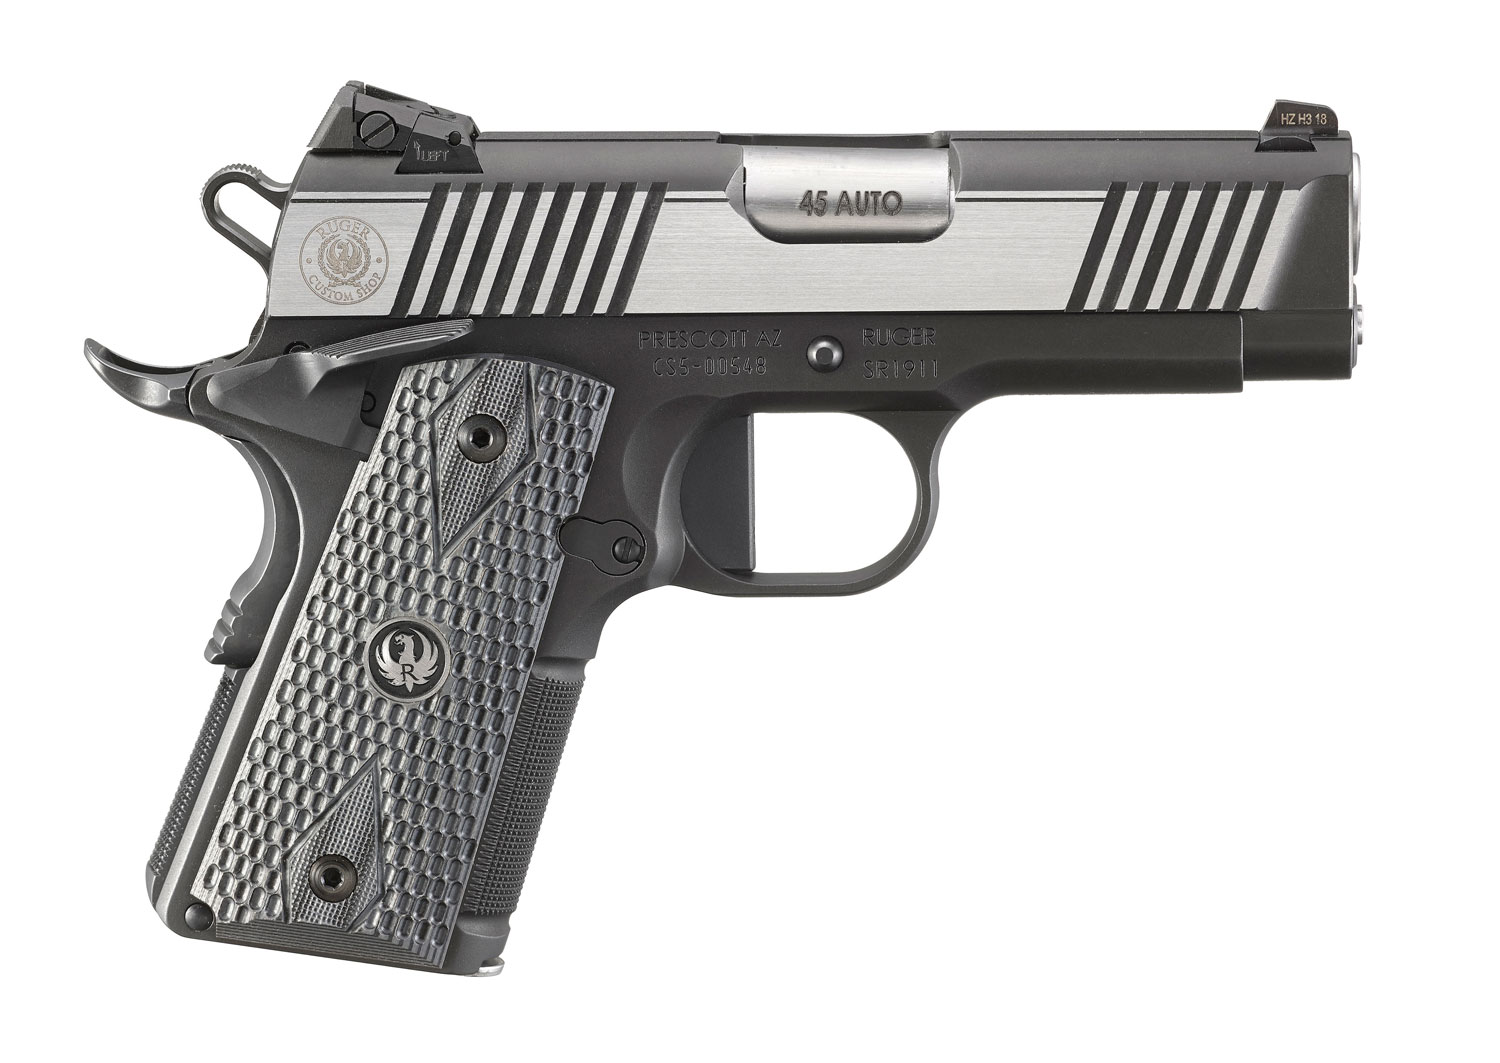 Ruger SR1911 Cust Shop Officer-Style 45 ACP